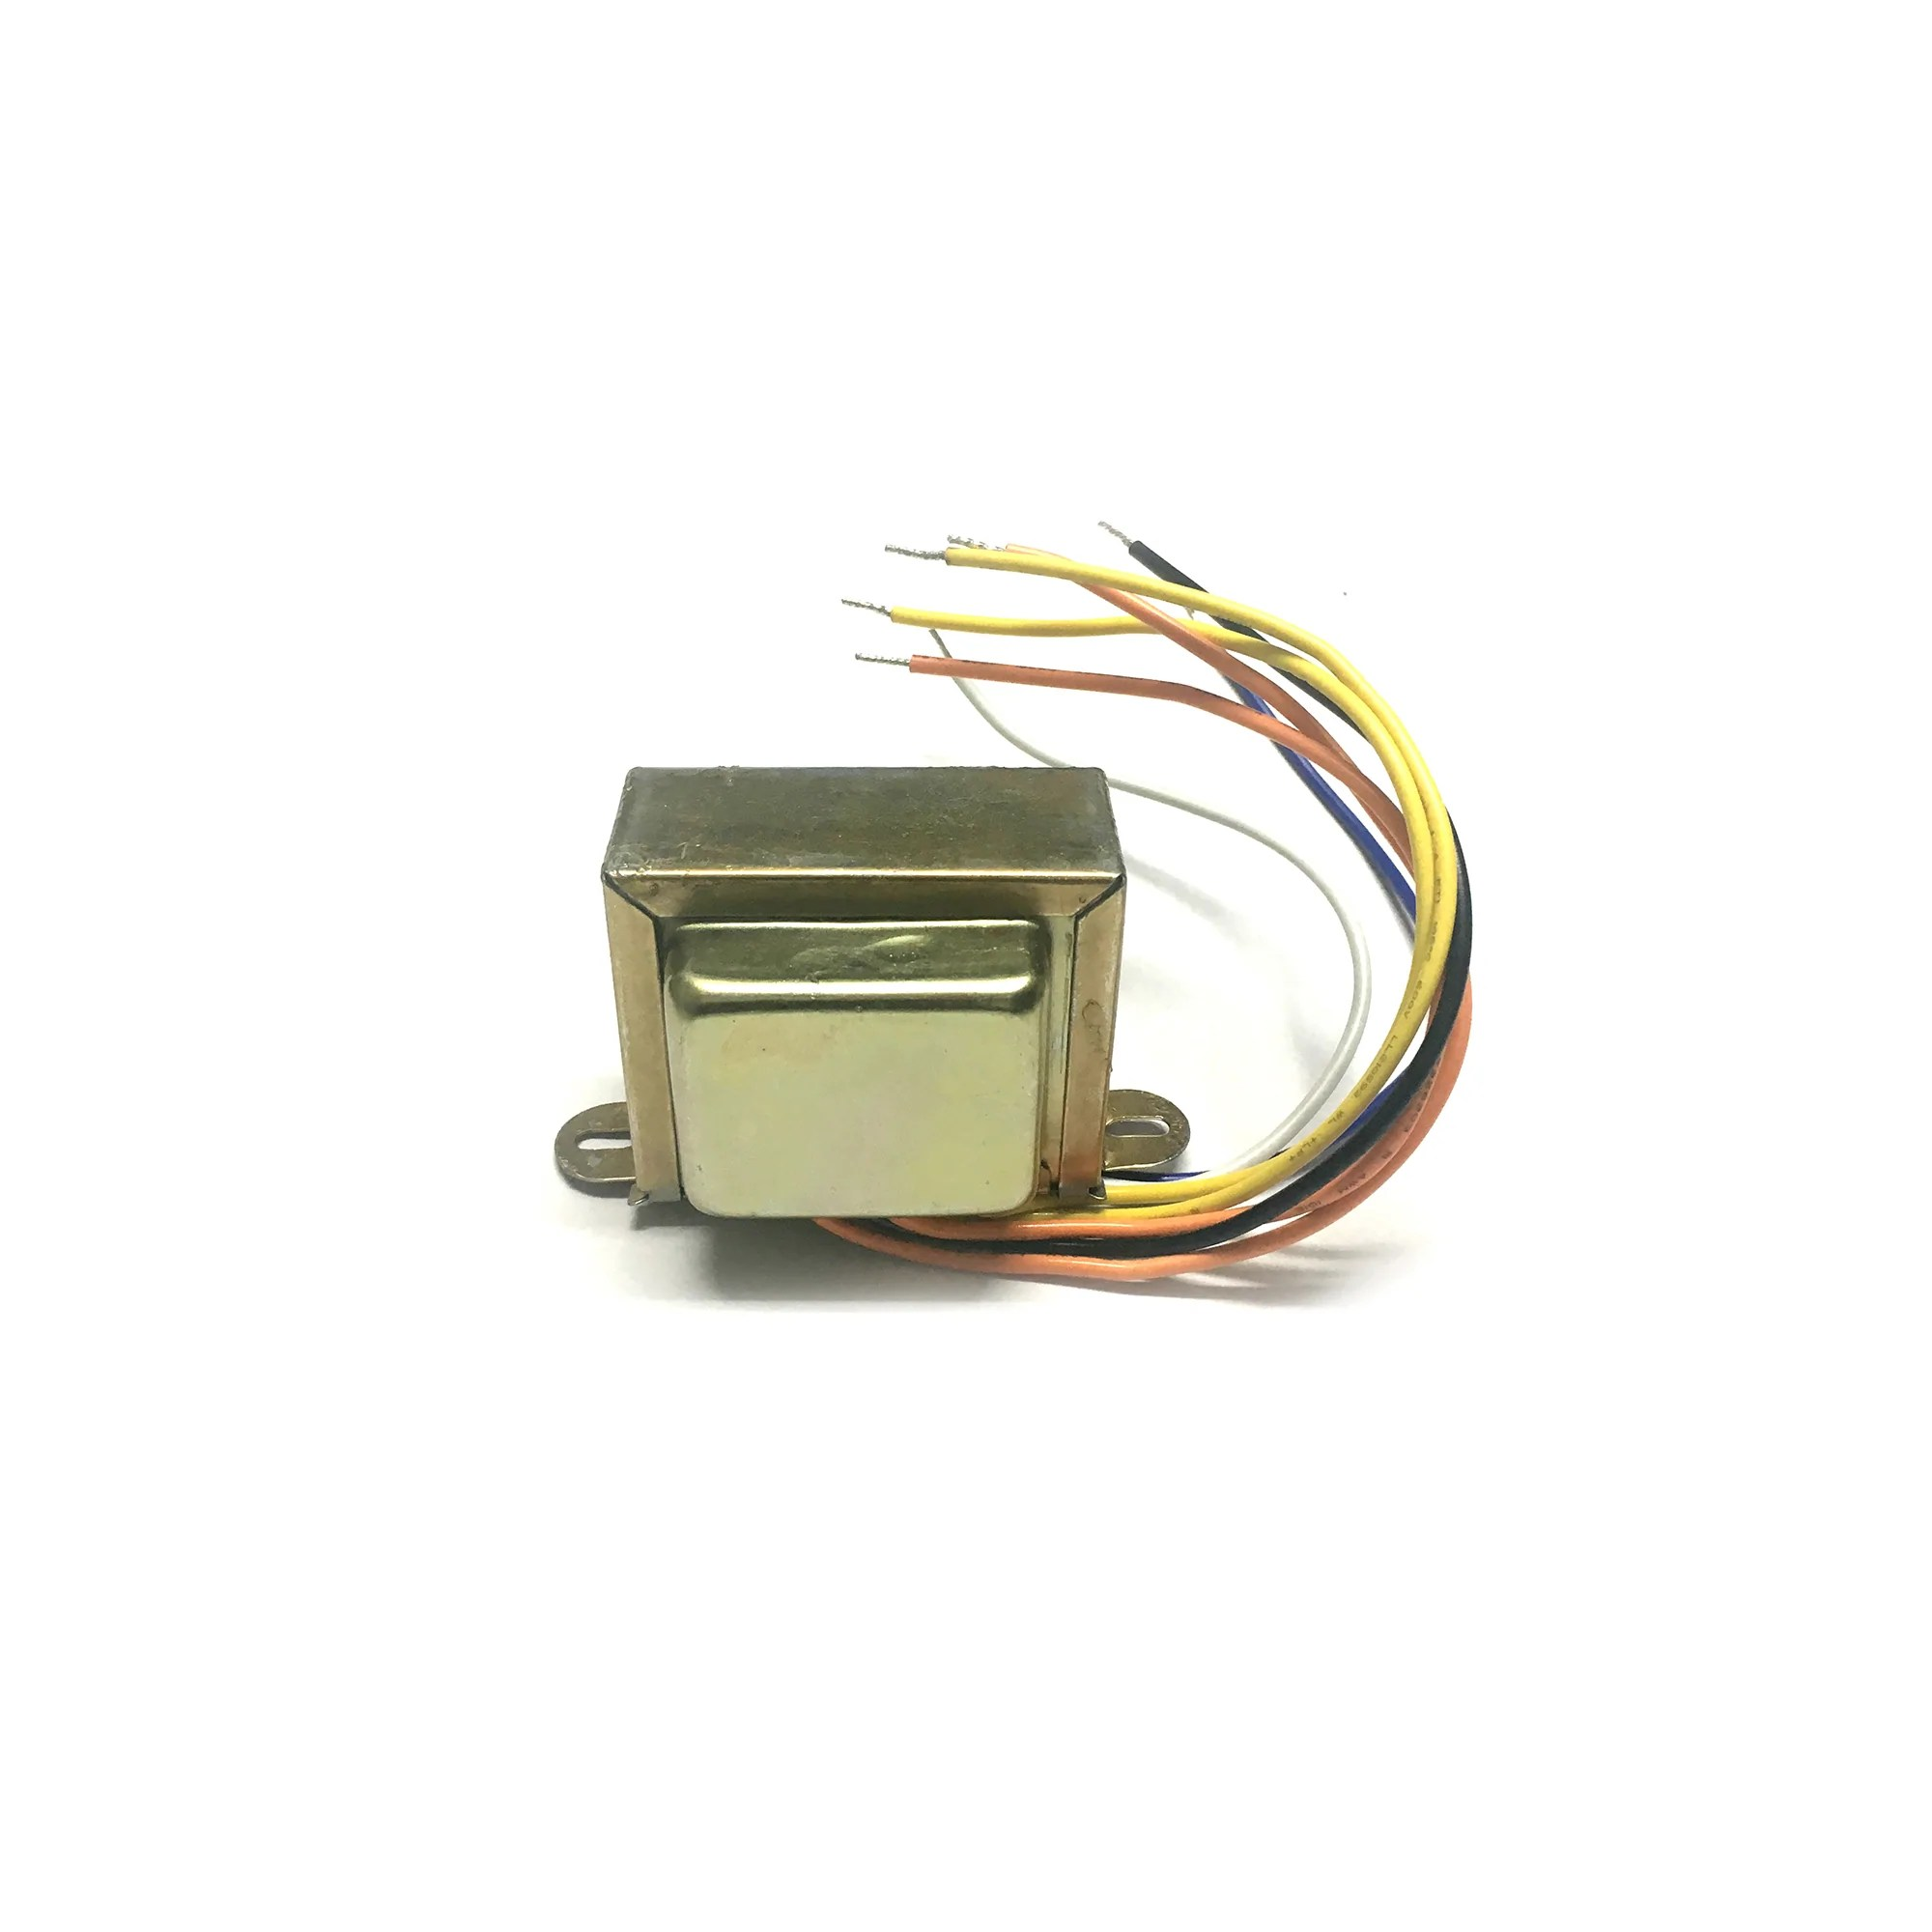 medium resolution of re 150 re 301 re 501 sre 555 240v power transformer replacement